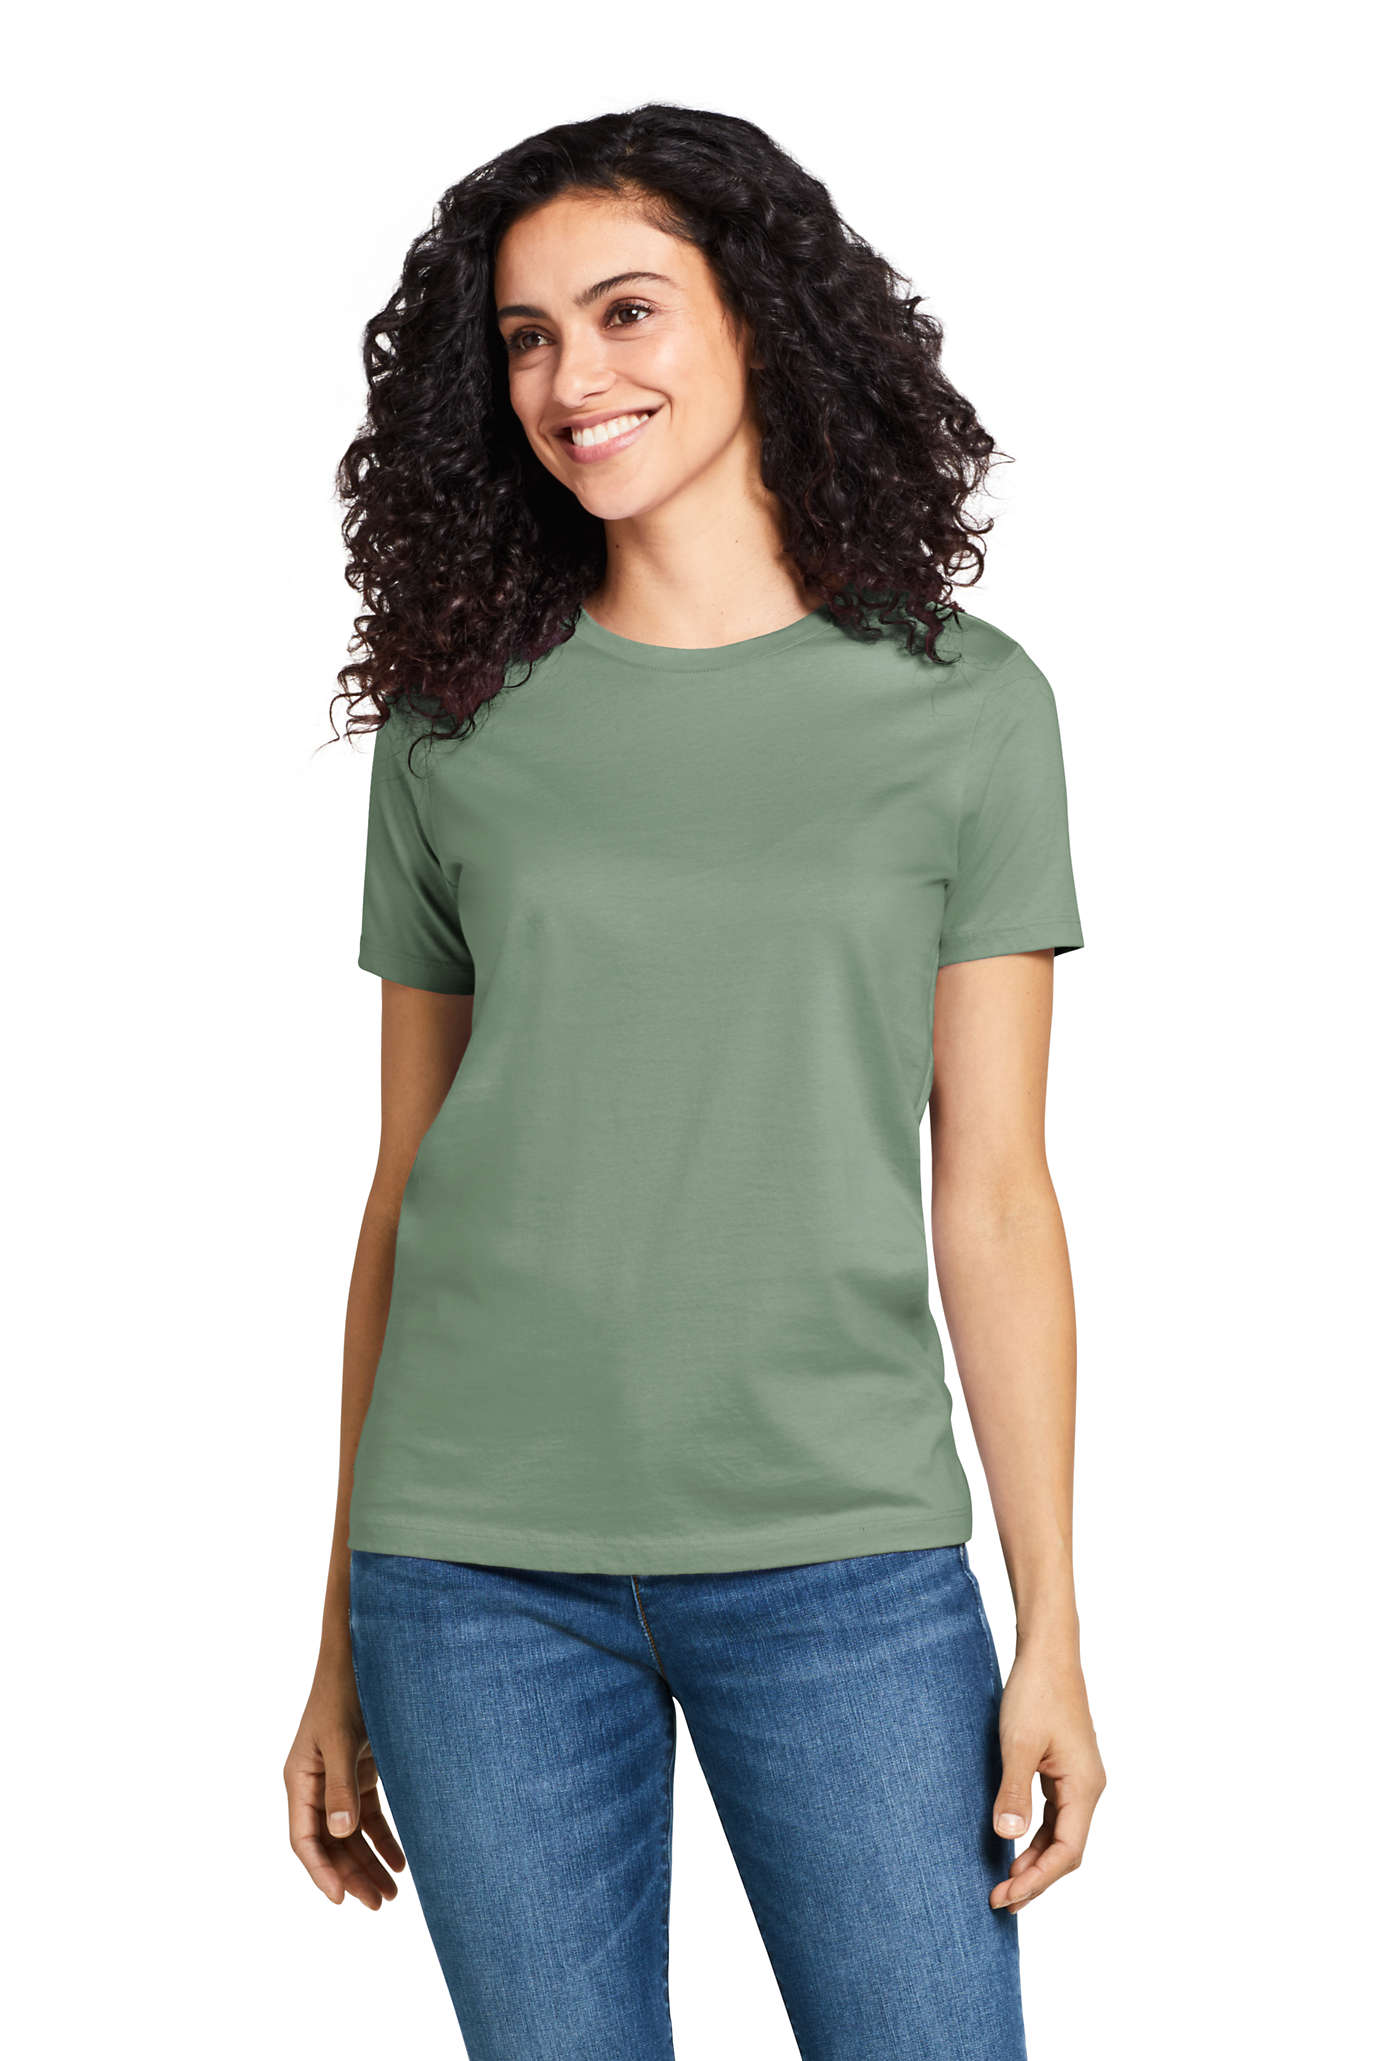 2bbedee10971 T Shirts for Women | Lands' End